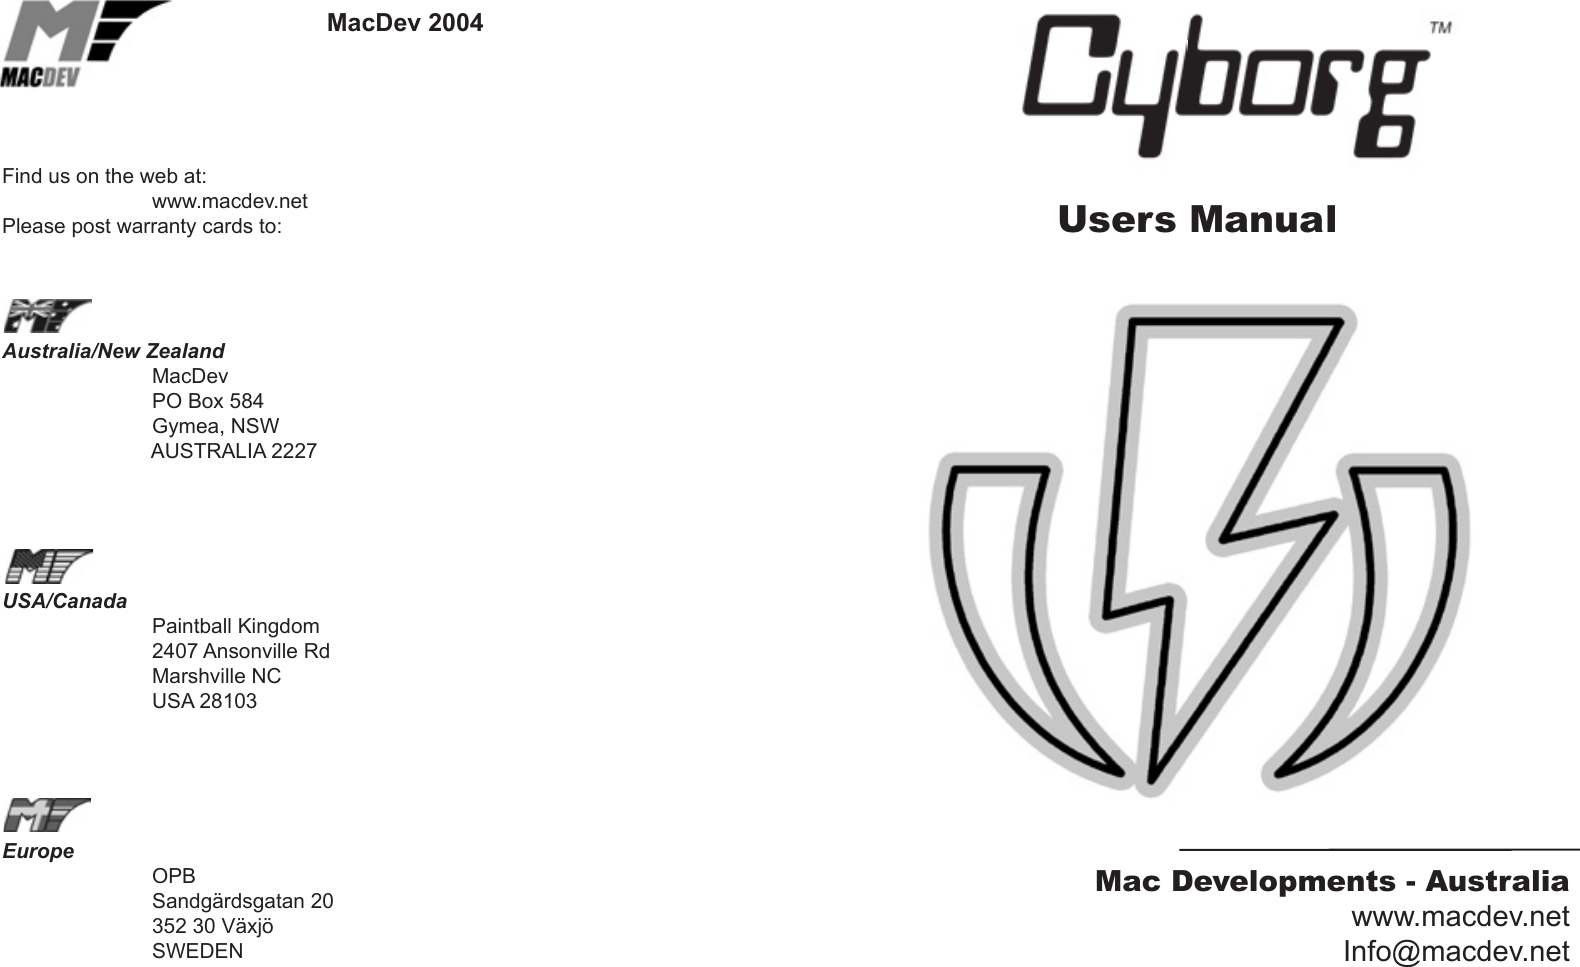 Macdev Cyborg V1 02 Users Manual